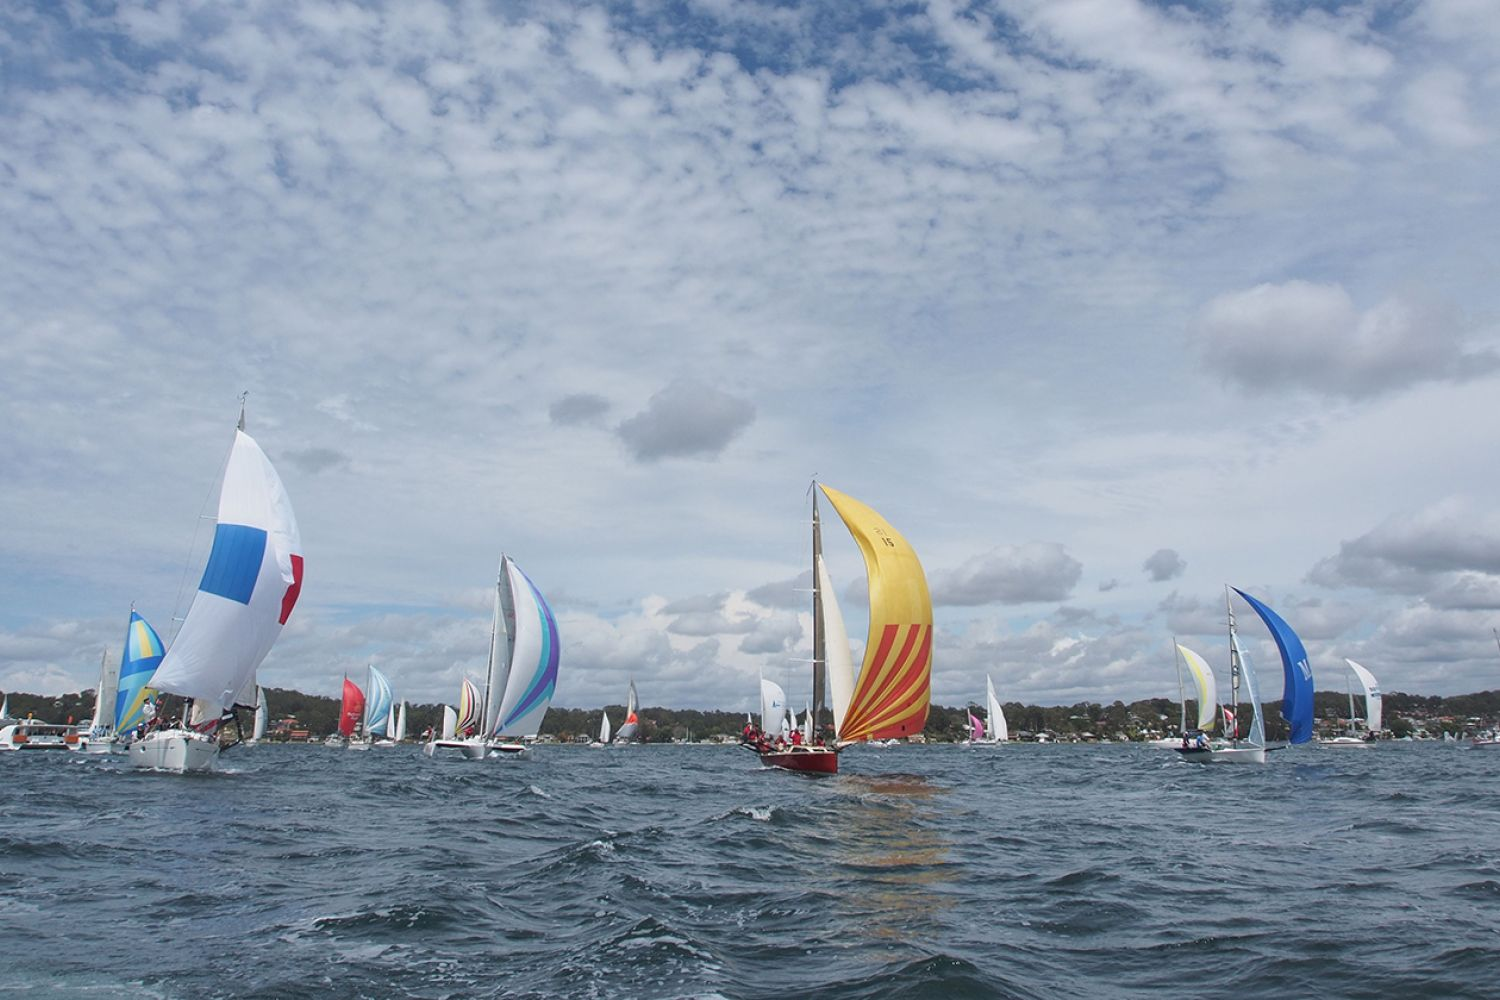 Lakefest, celebration of Lake Macquarie's aquatic lifestyle and rich maritime history